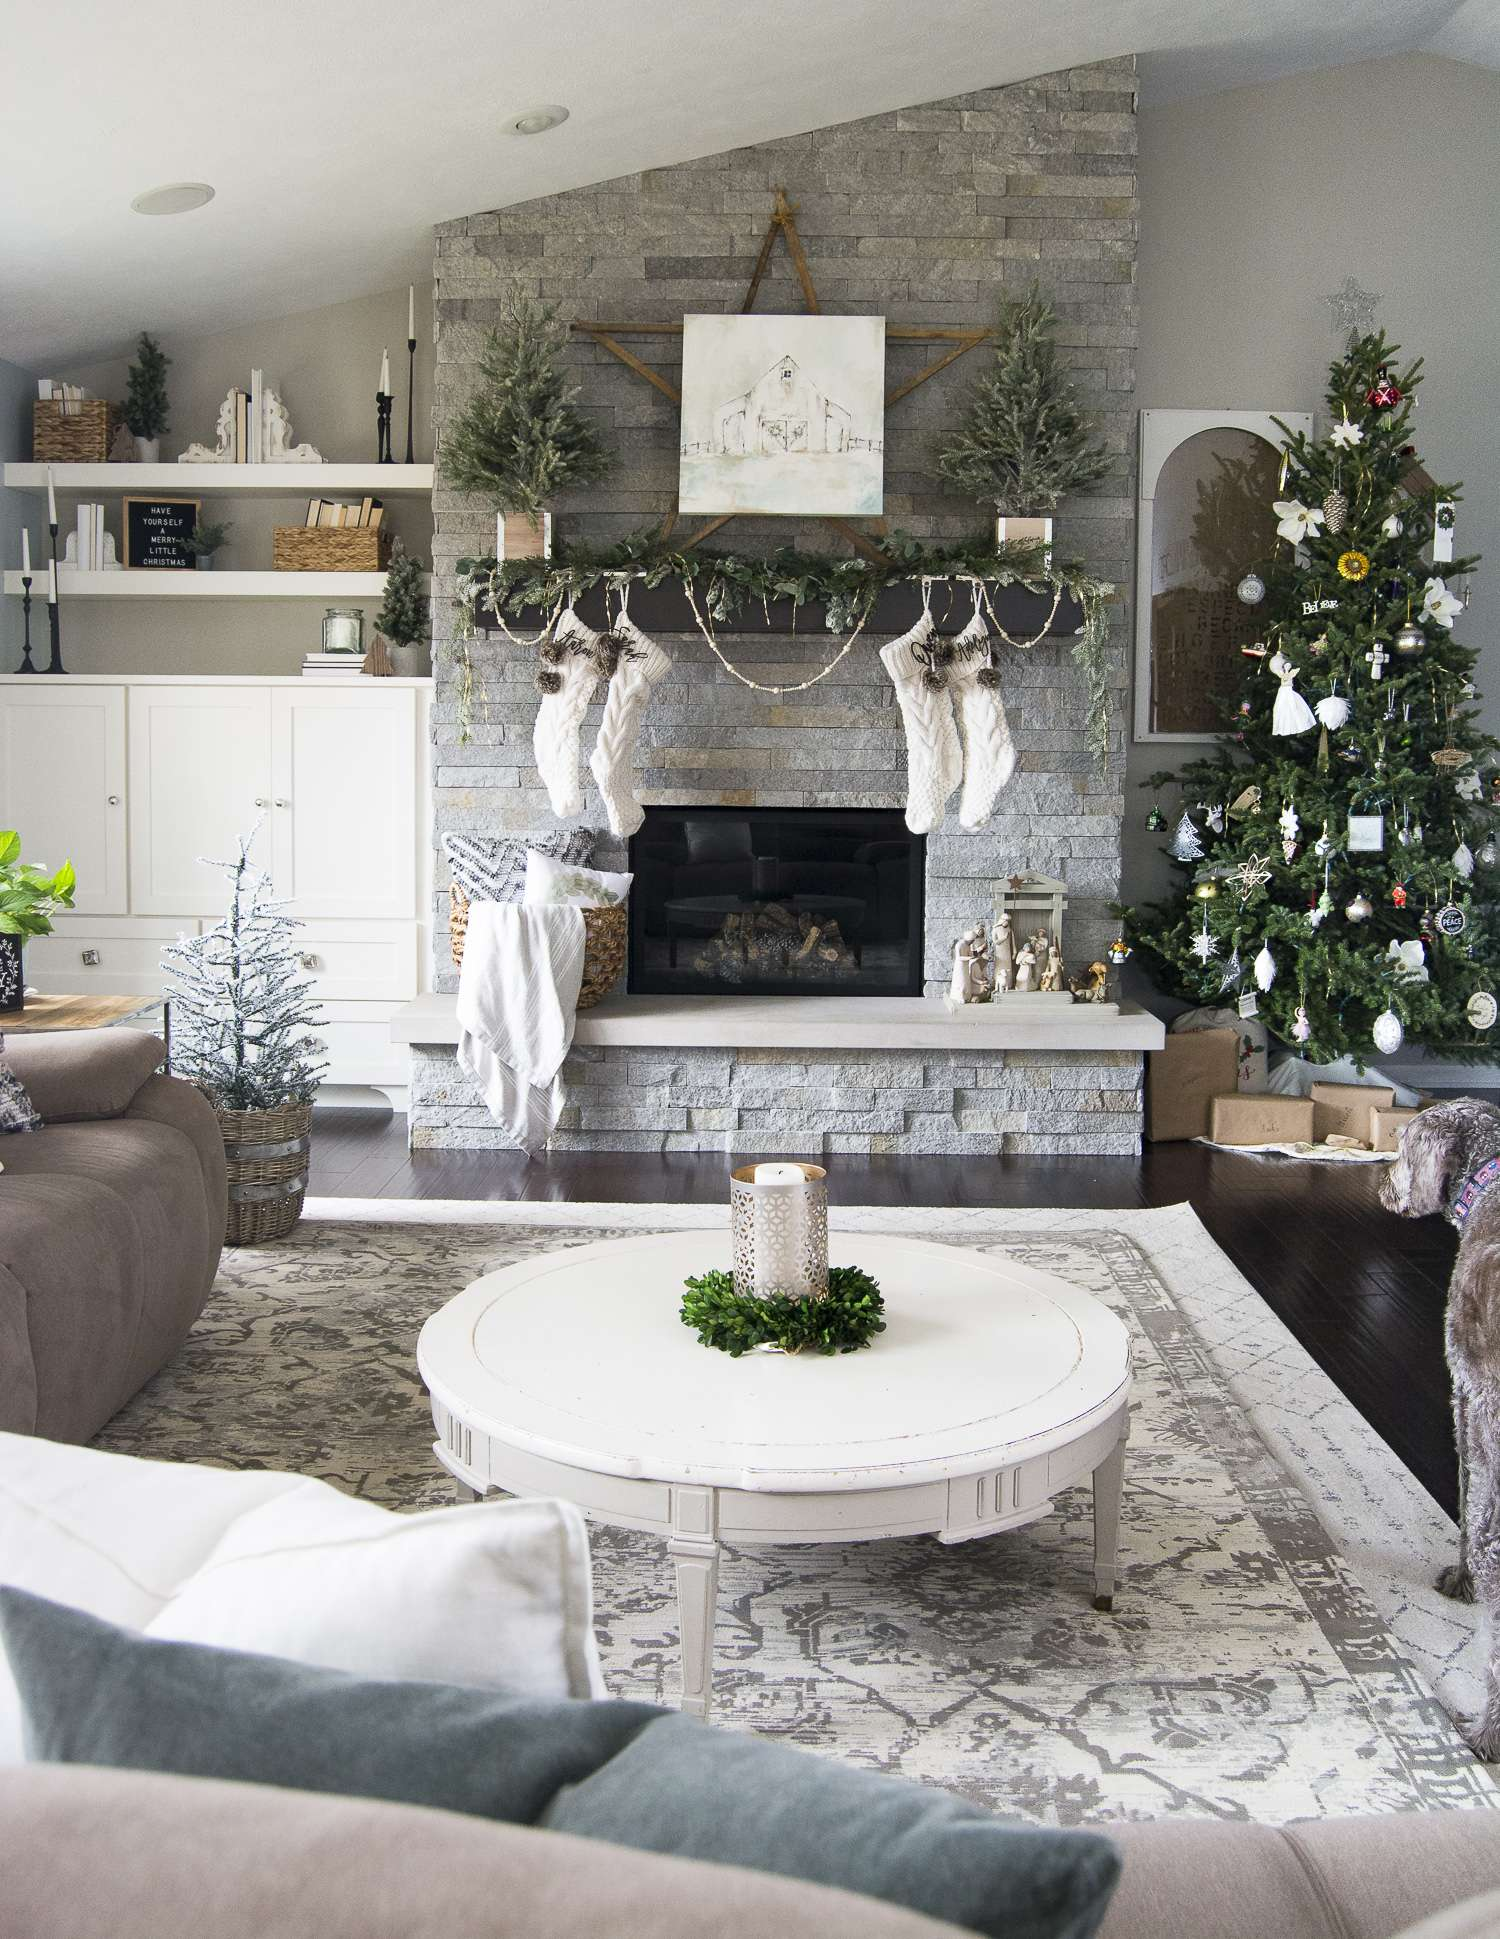 Christmastime should be cozy and filled with joy. Join me for my Cozy Christmas Home Tour along with 9 talented bloggers for Christmas decor inspiration.